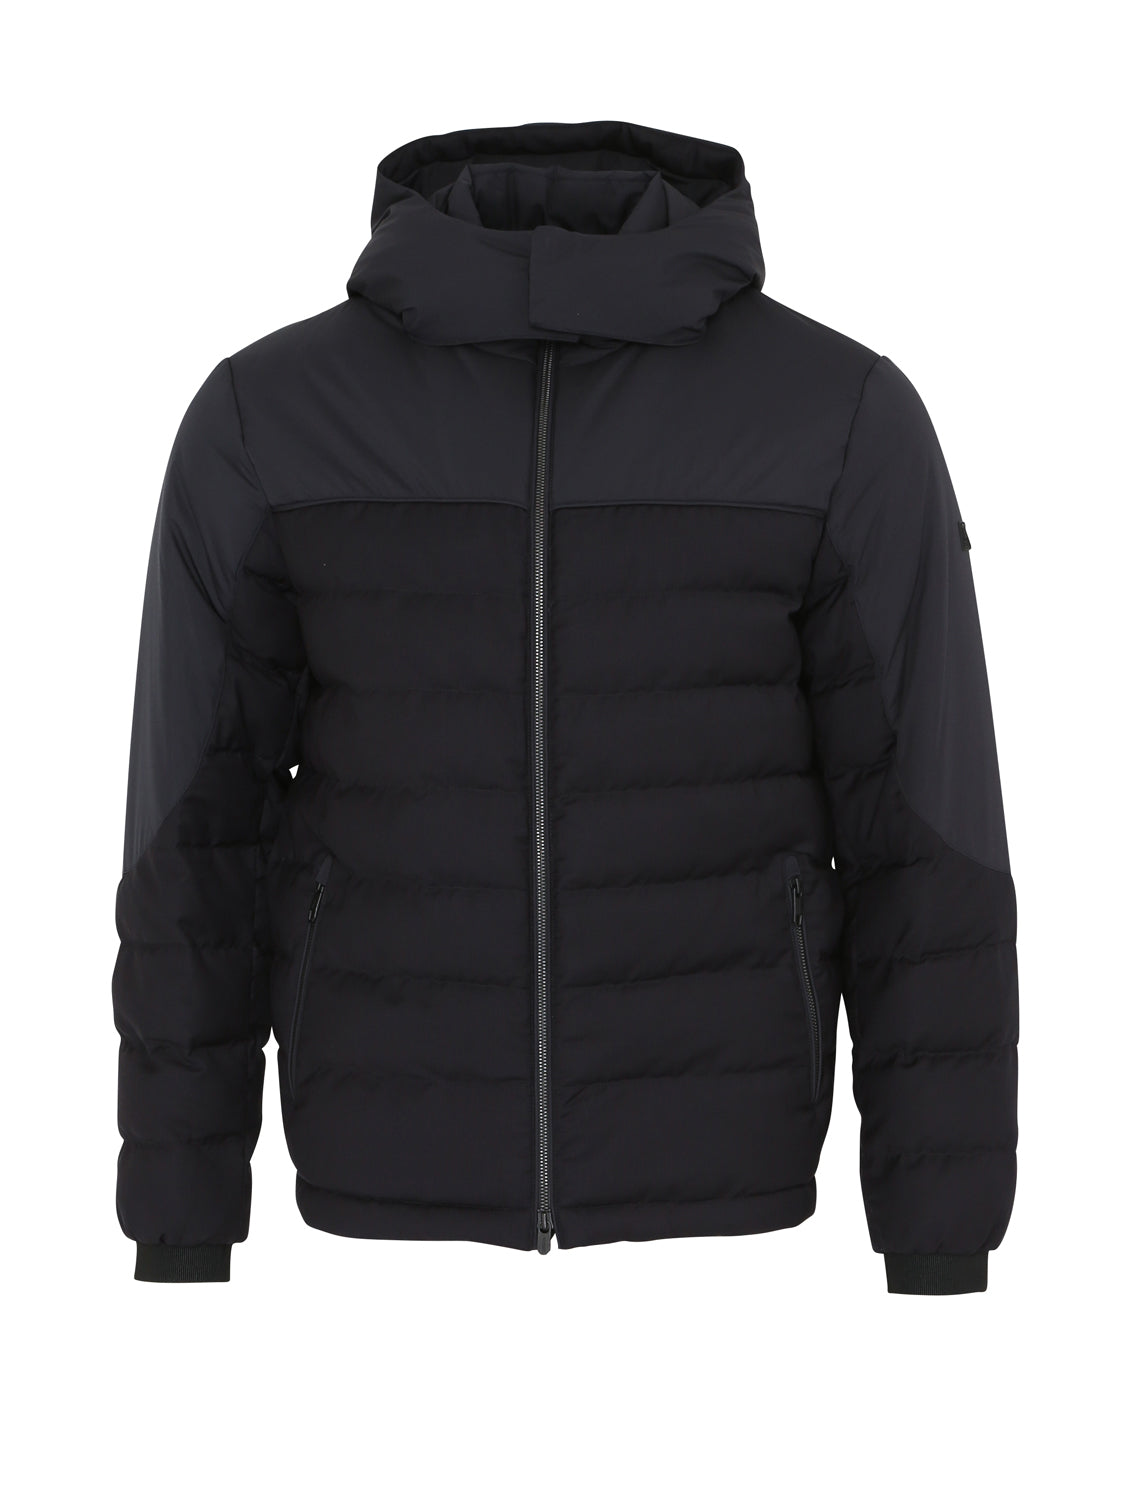 Z Zegna Techmerino™ 'Feather Free' Quilted Jacket (Navy) - Union 22